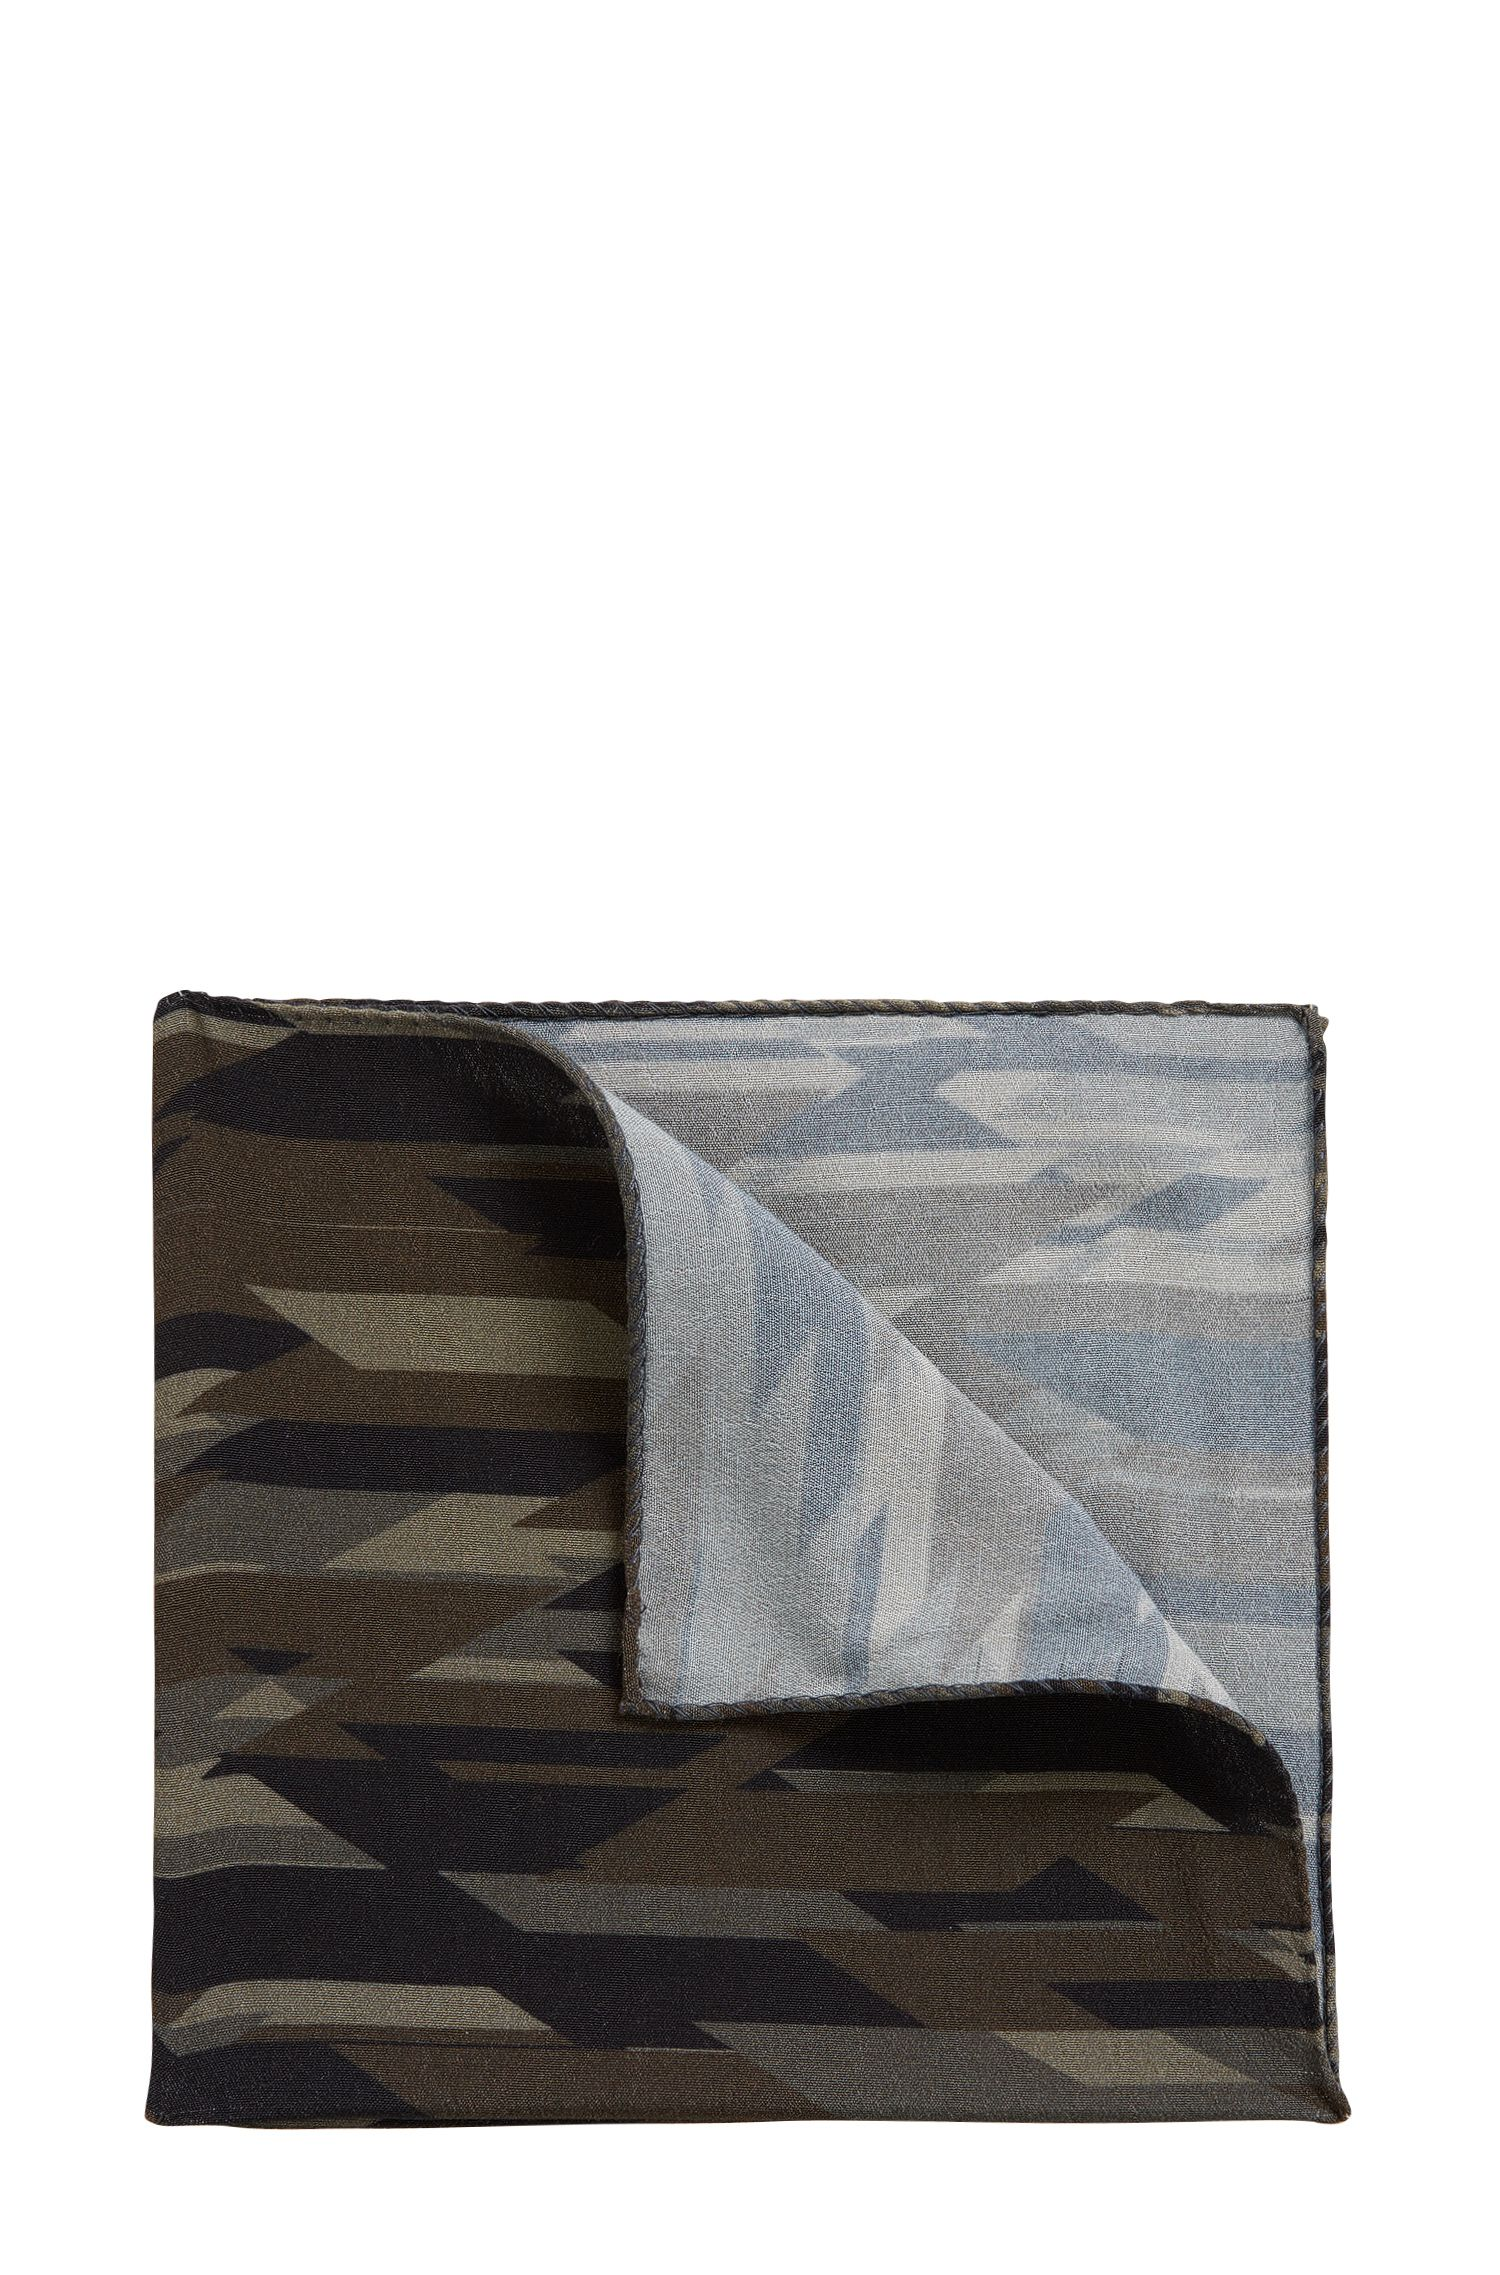 Pocket square in camouflage print